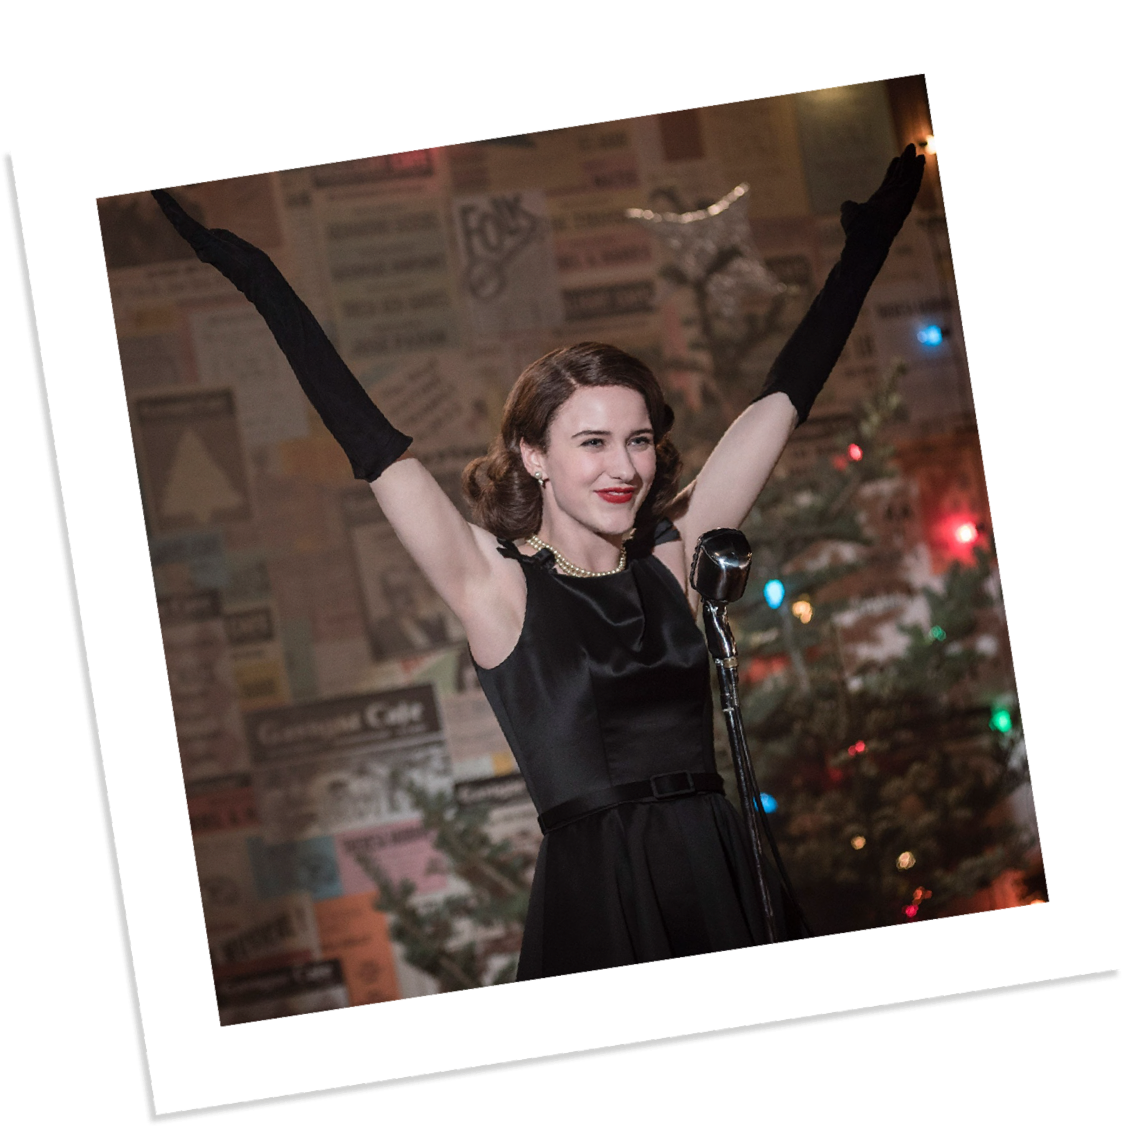 The Marvelous Mrs. Maisel polaroid of actress on stage in black dress